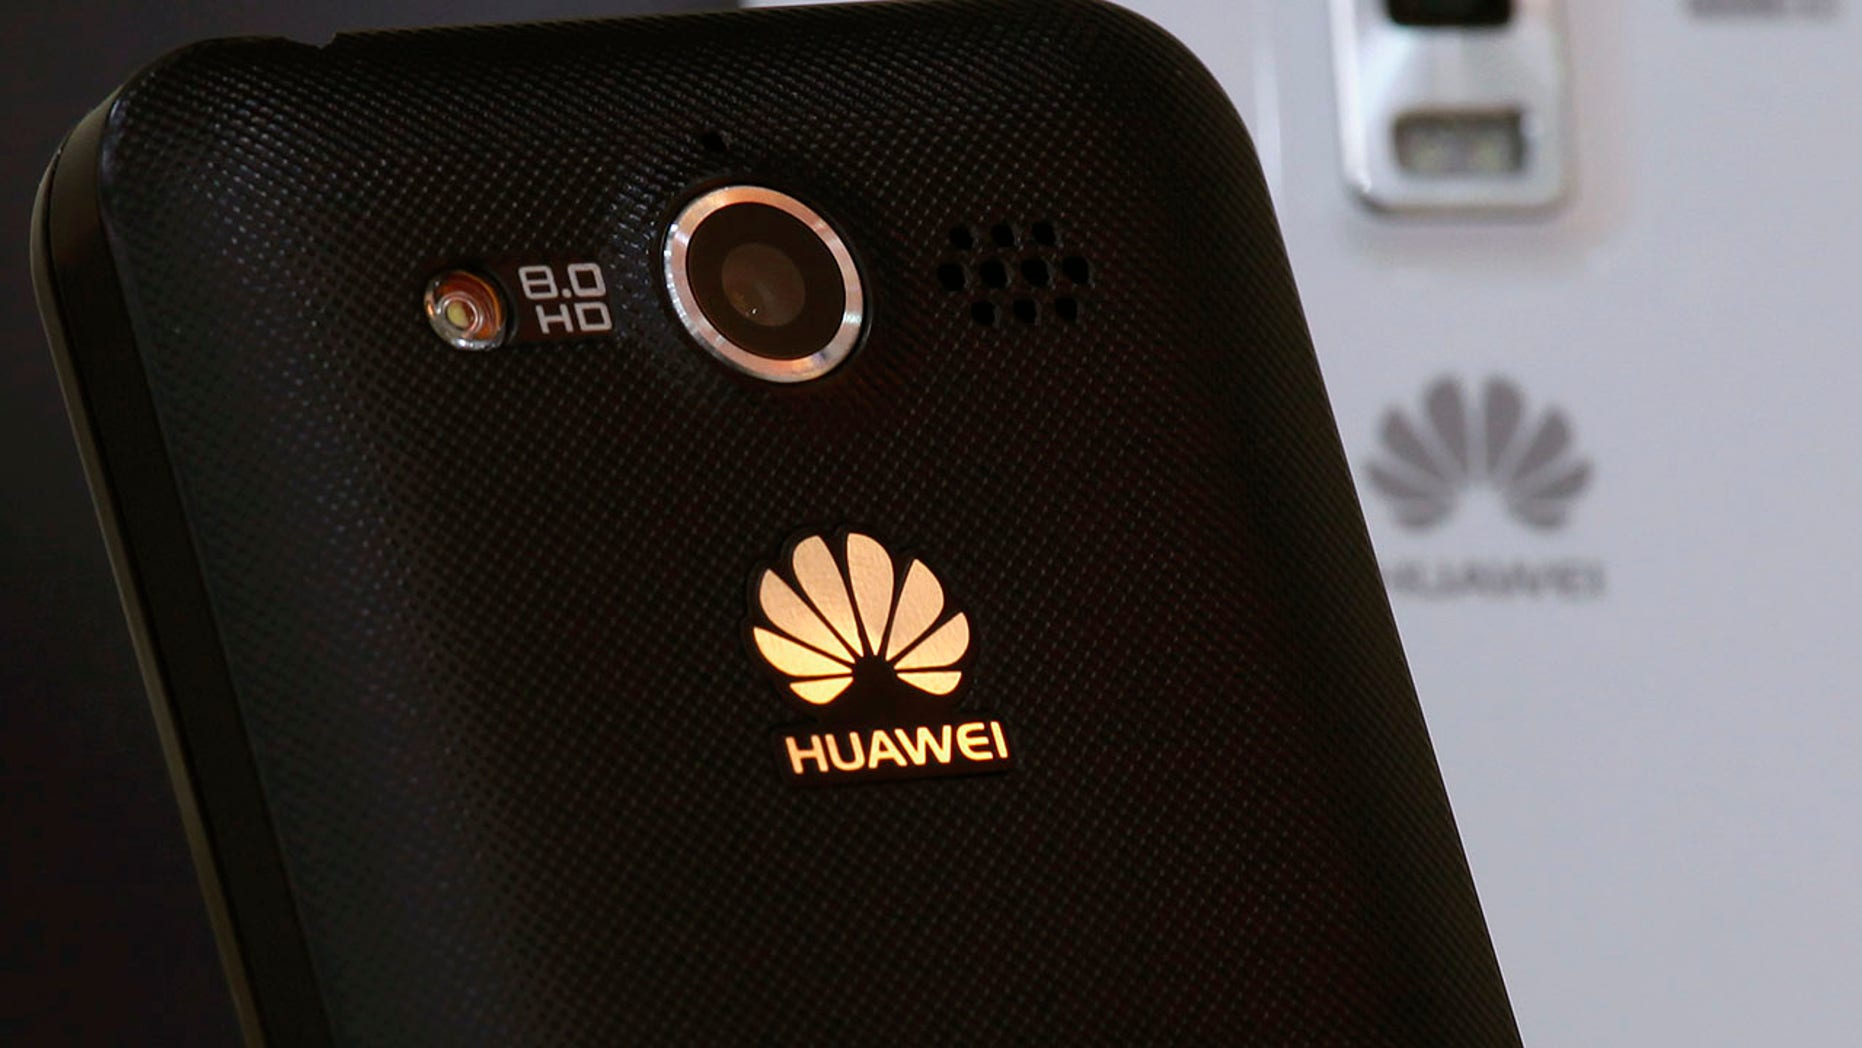 Some Washington lawmakers have recently expressed worry that Huawei's inroads in countries with close security ties to the U.S. could make their telecommunications networks more vulnerable to Beijing snooping.